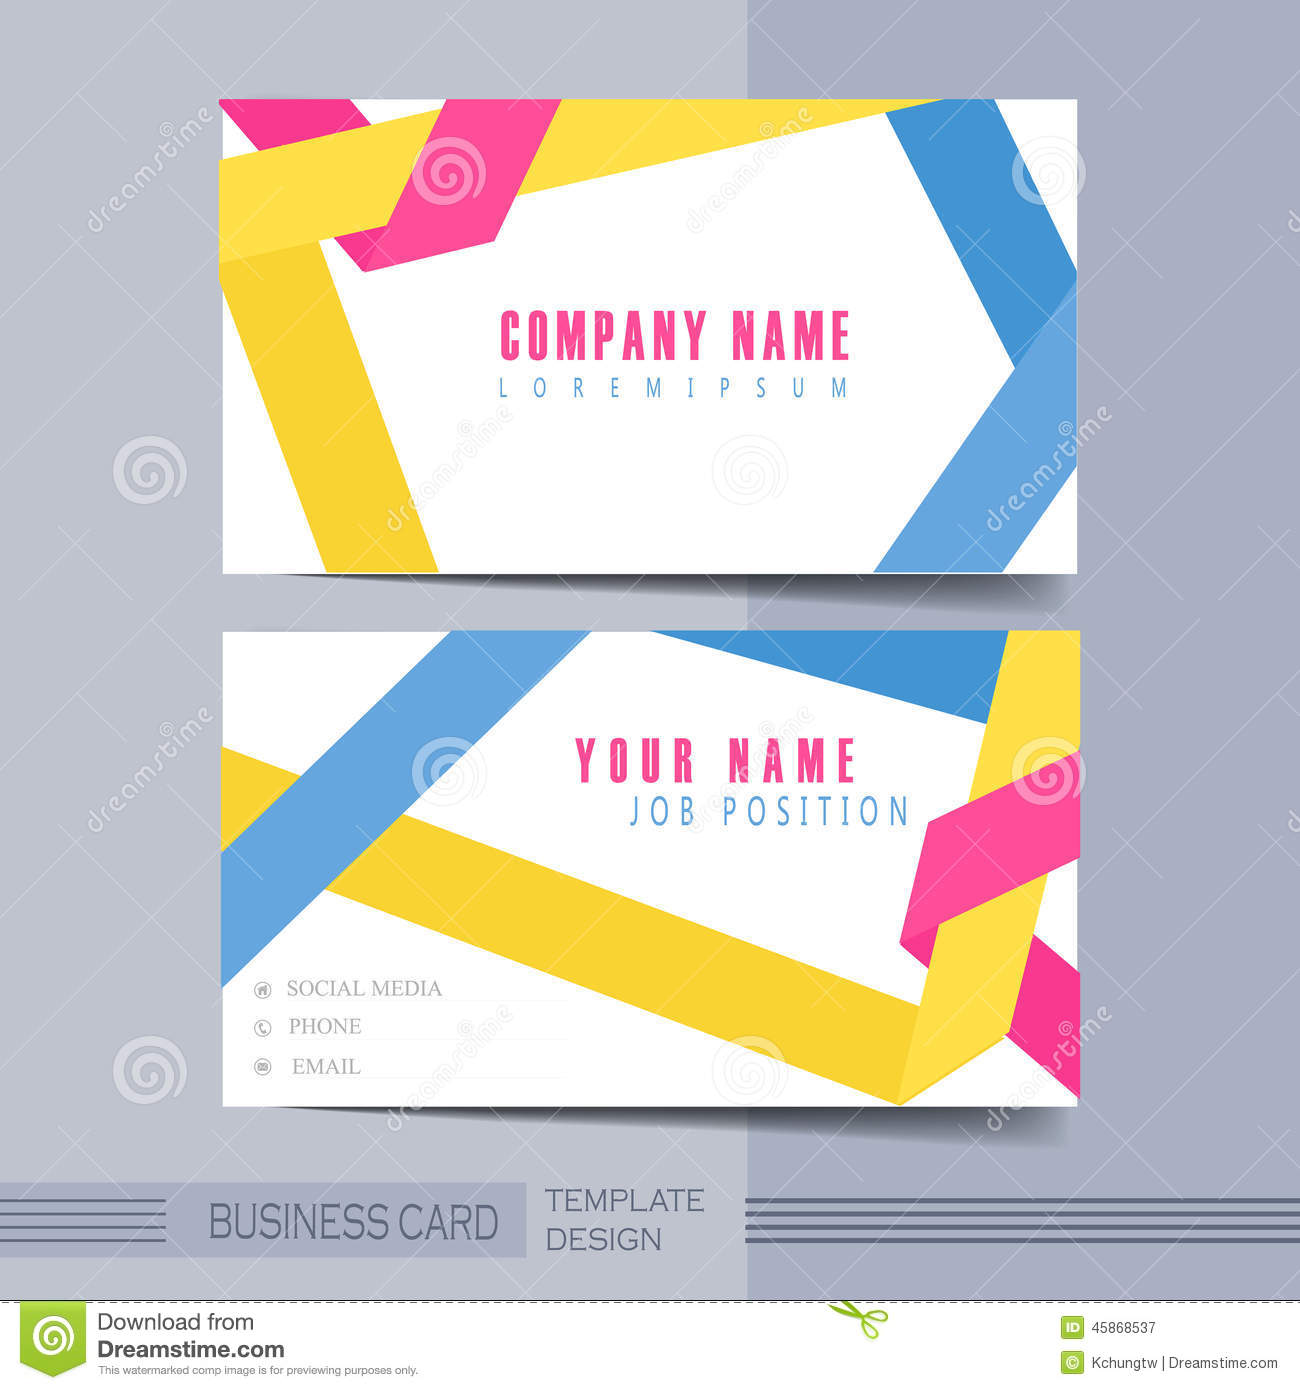 Download Origami Folded Lines Background Design For Business Card Stock Vector